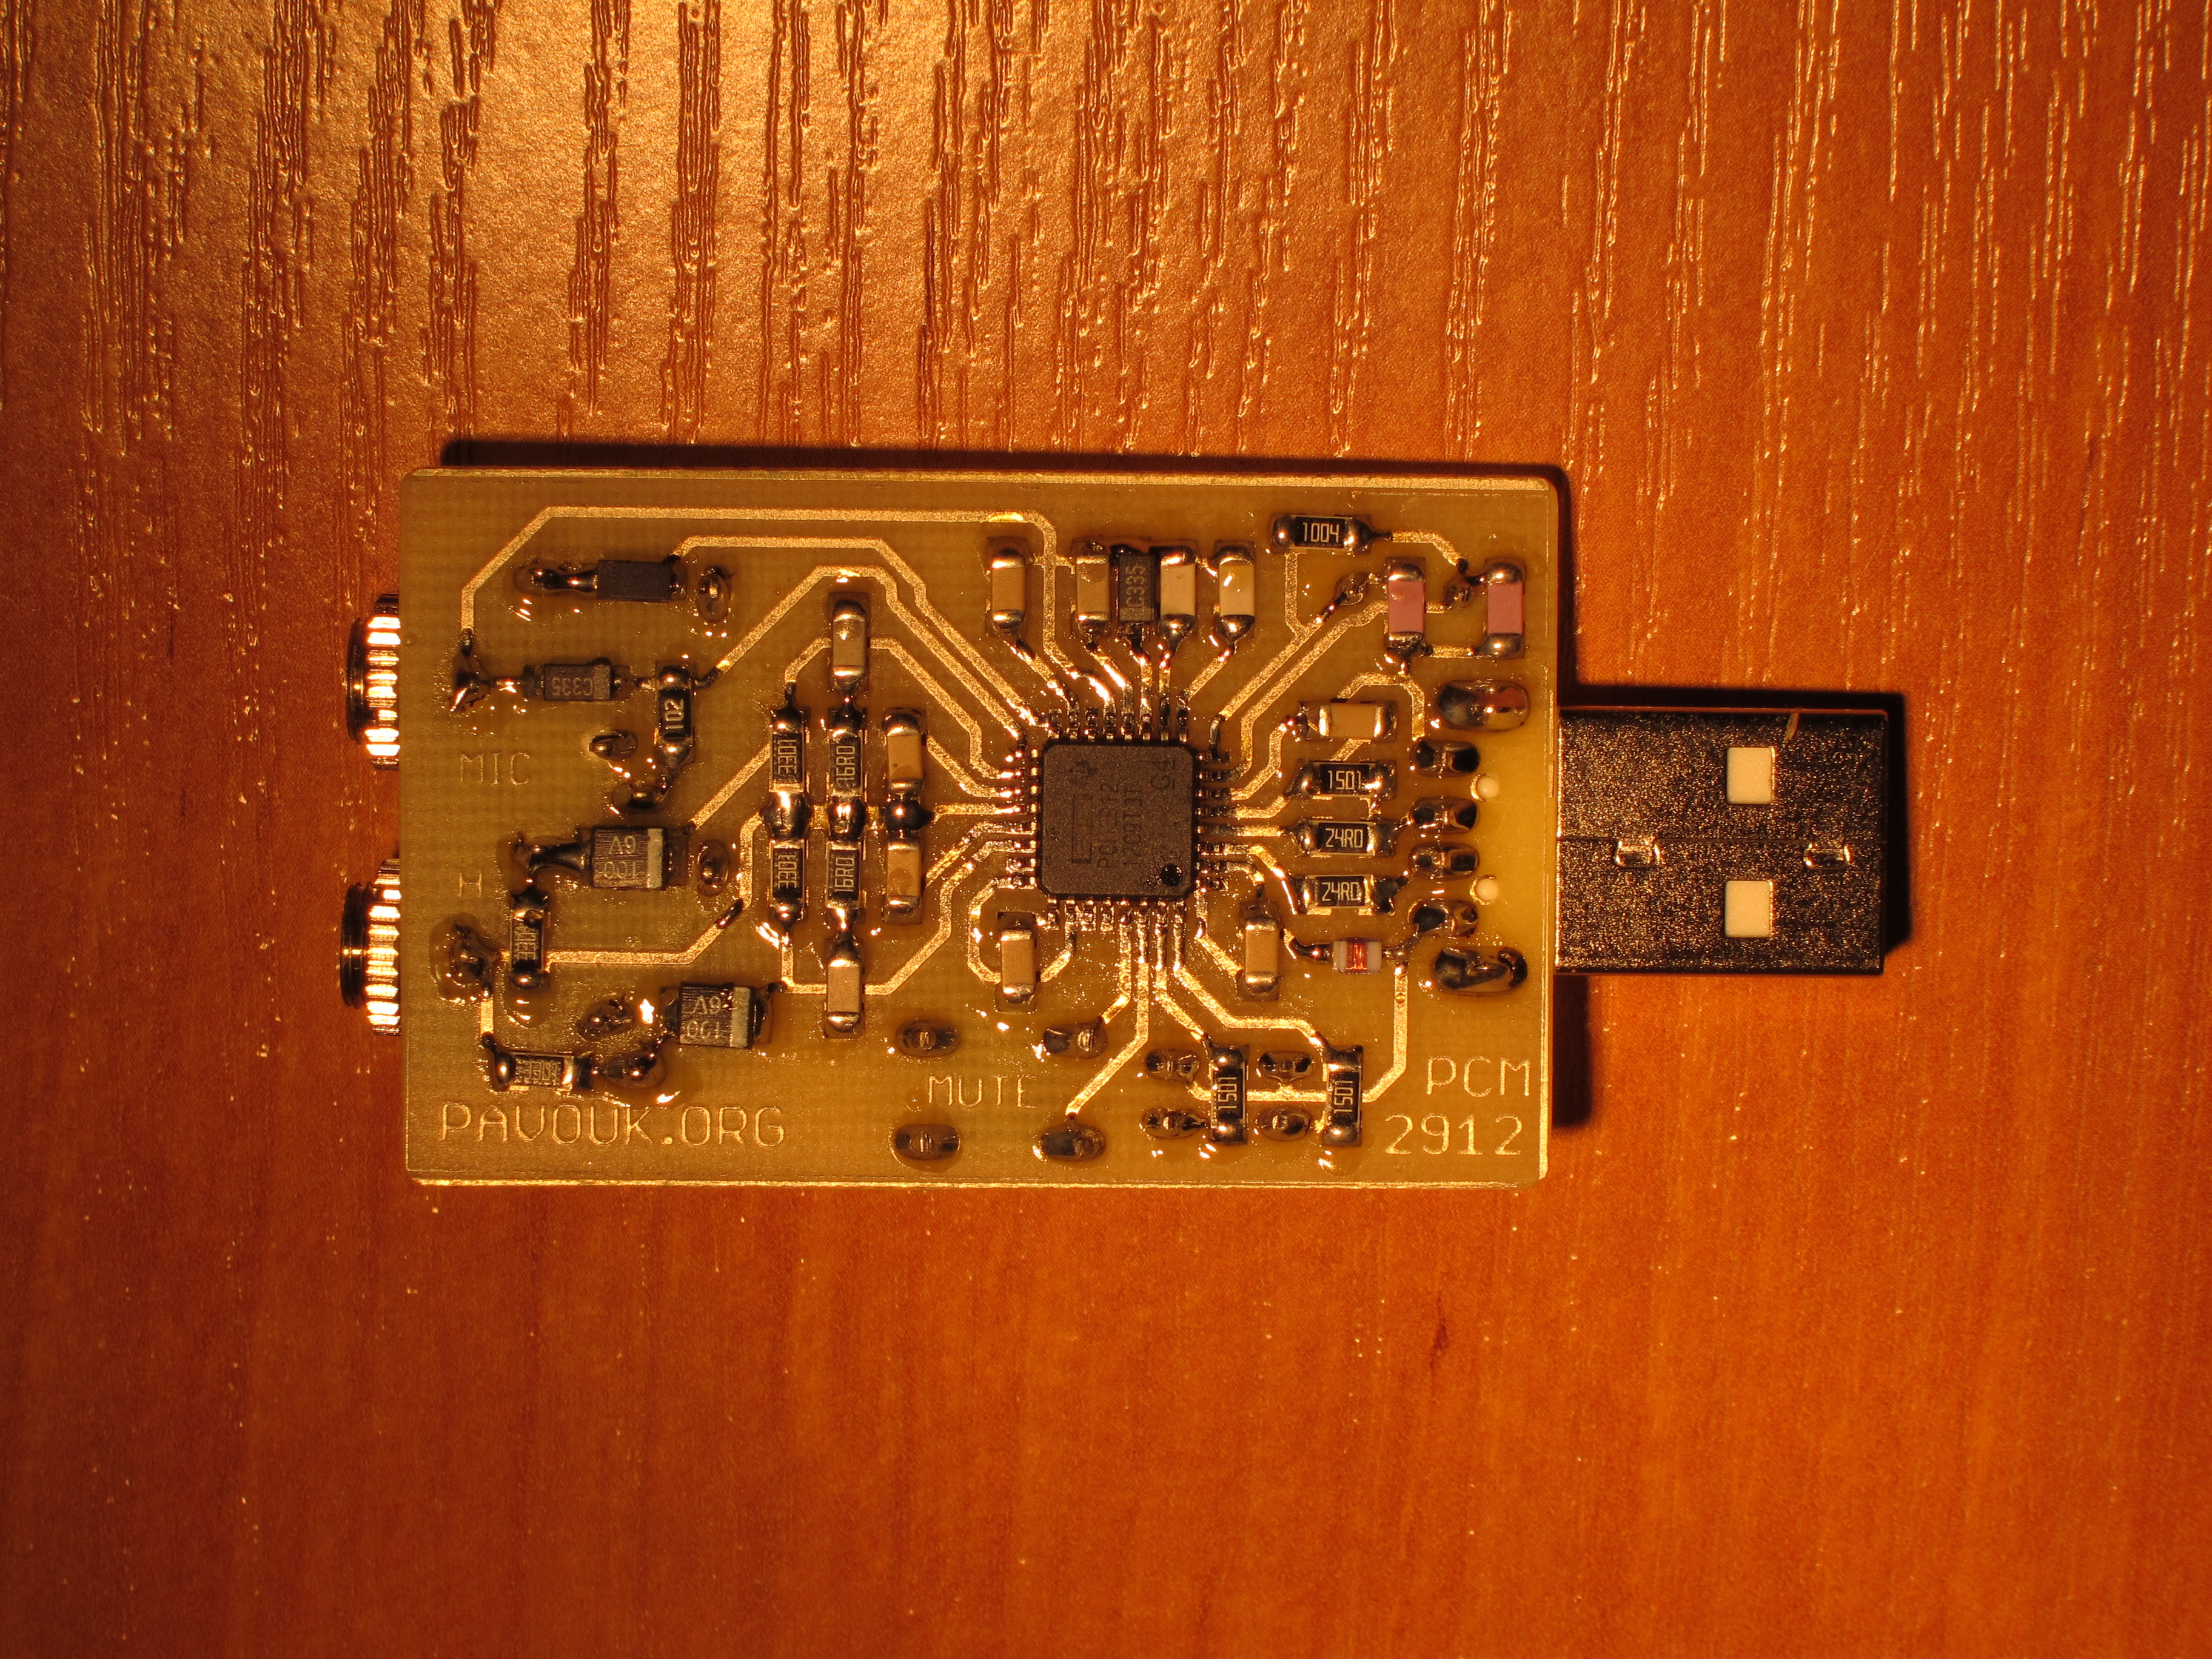 Usb Audio Dongle With Pcm2912 Amplifier Circuit Board Electronic Design